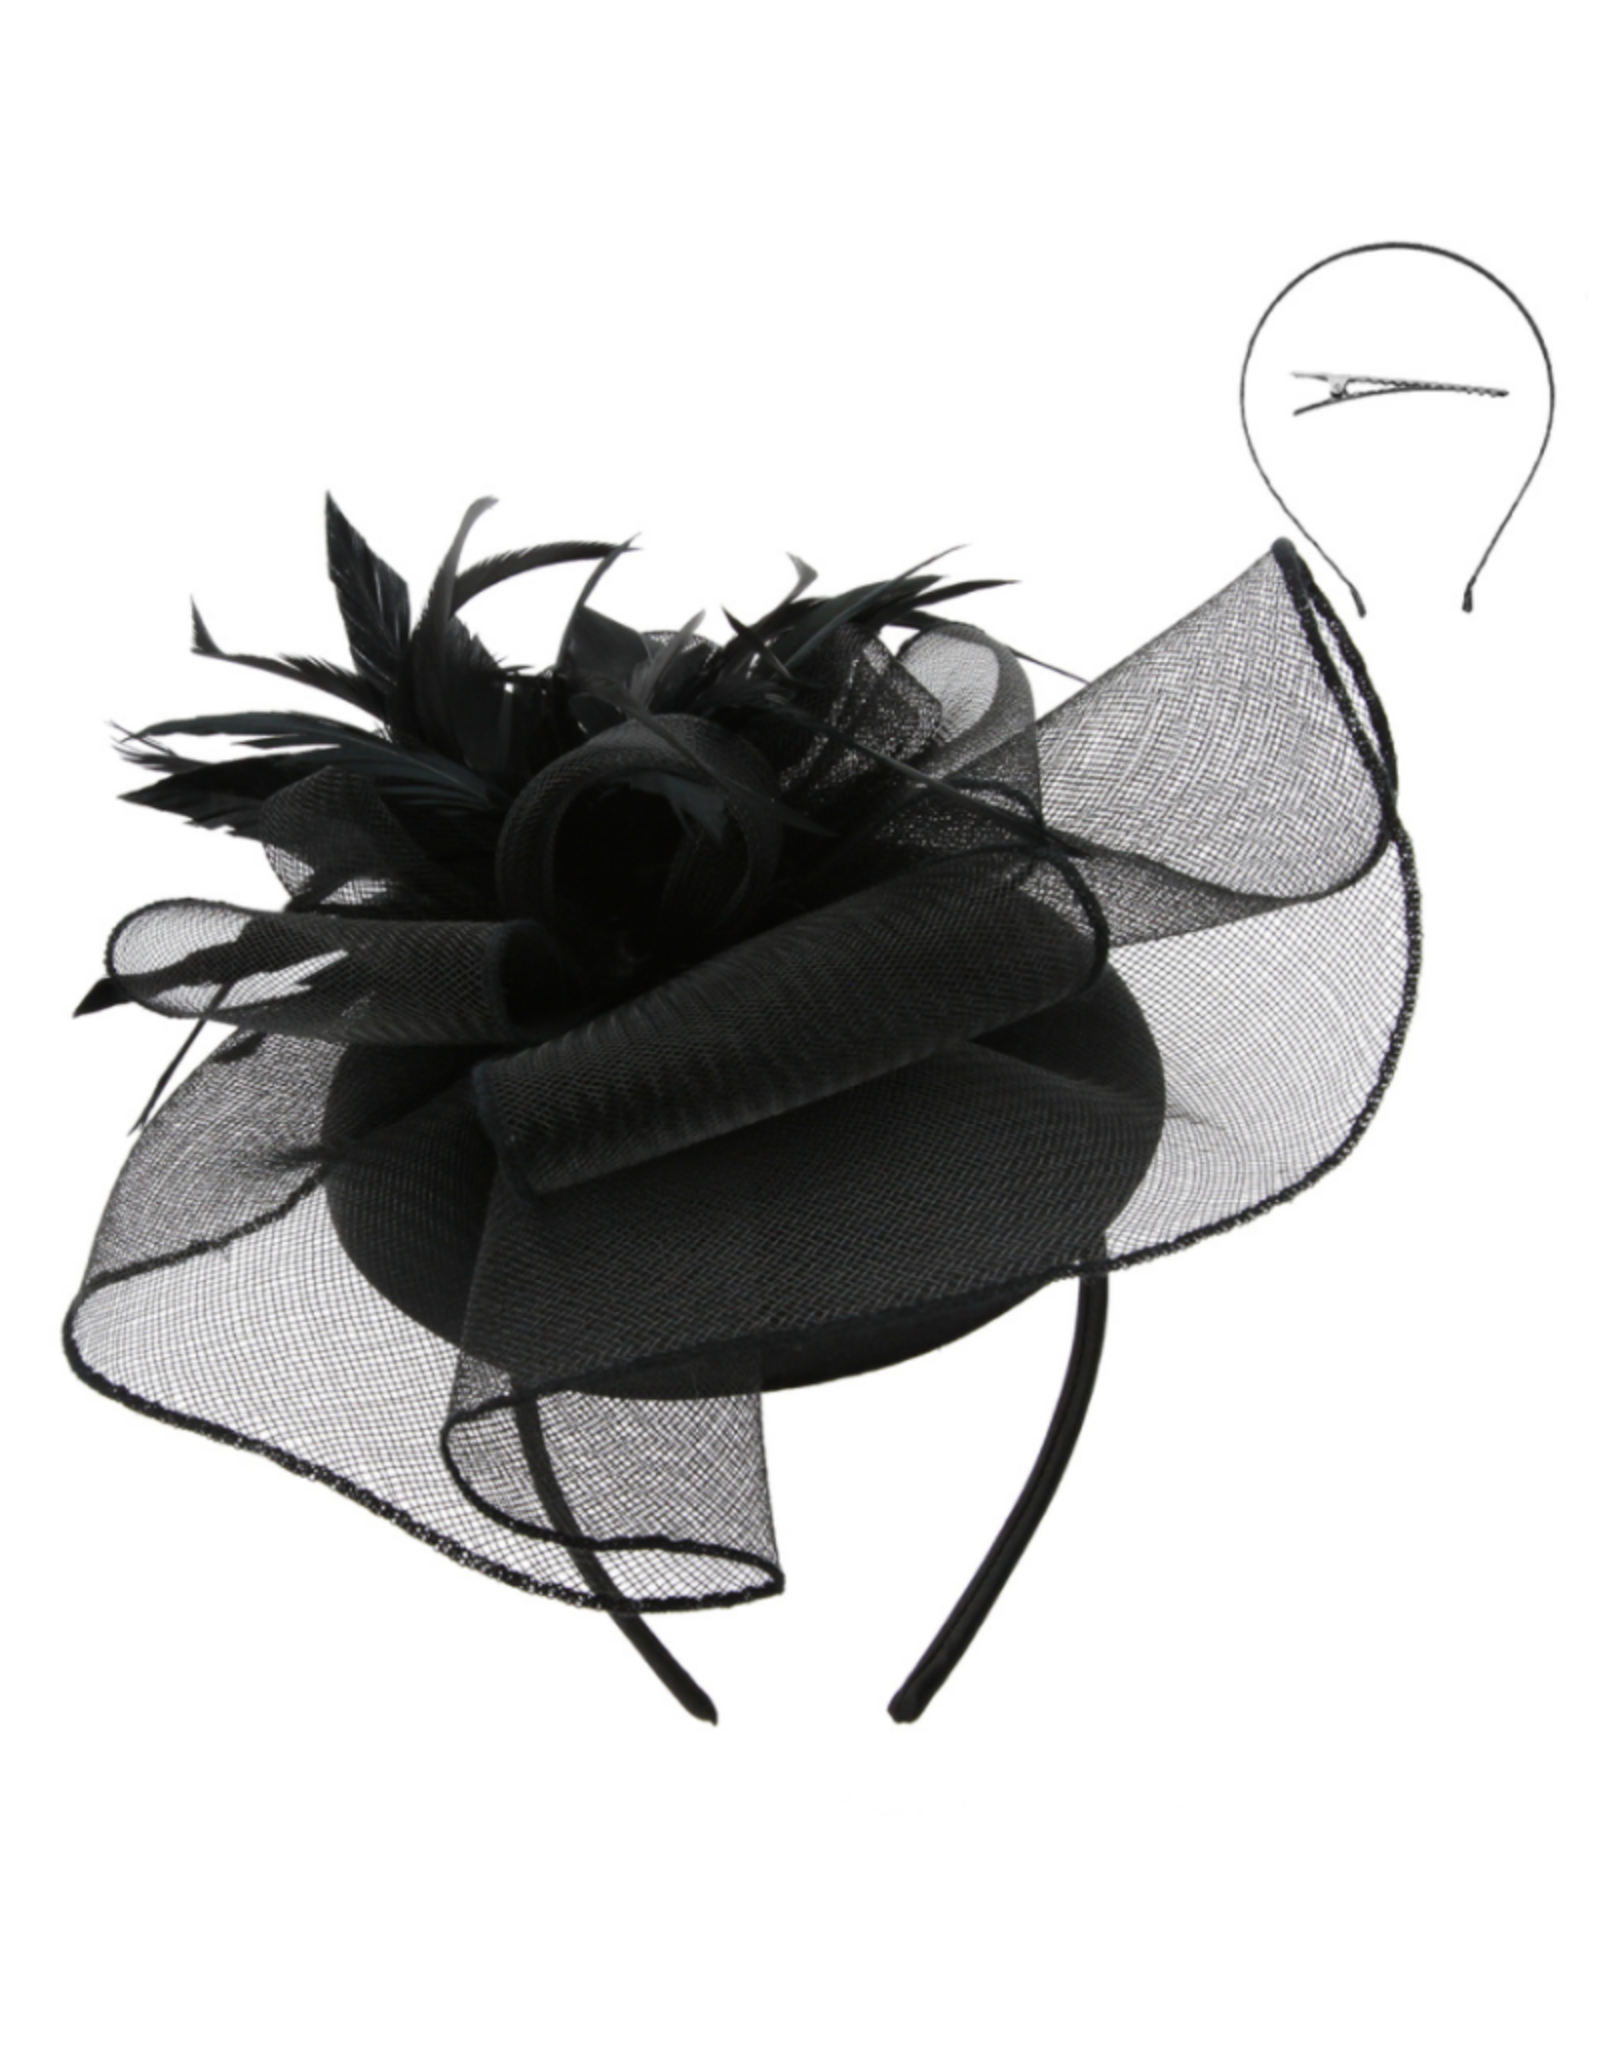 FASCINATOR-WAVY MESH FLORAL W/ FEATHERS, BLACK